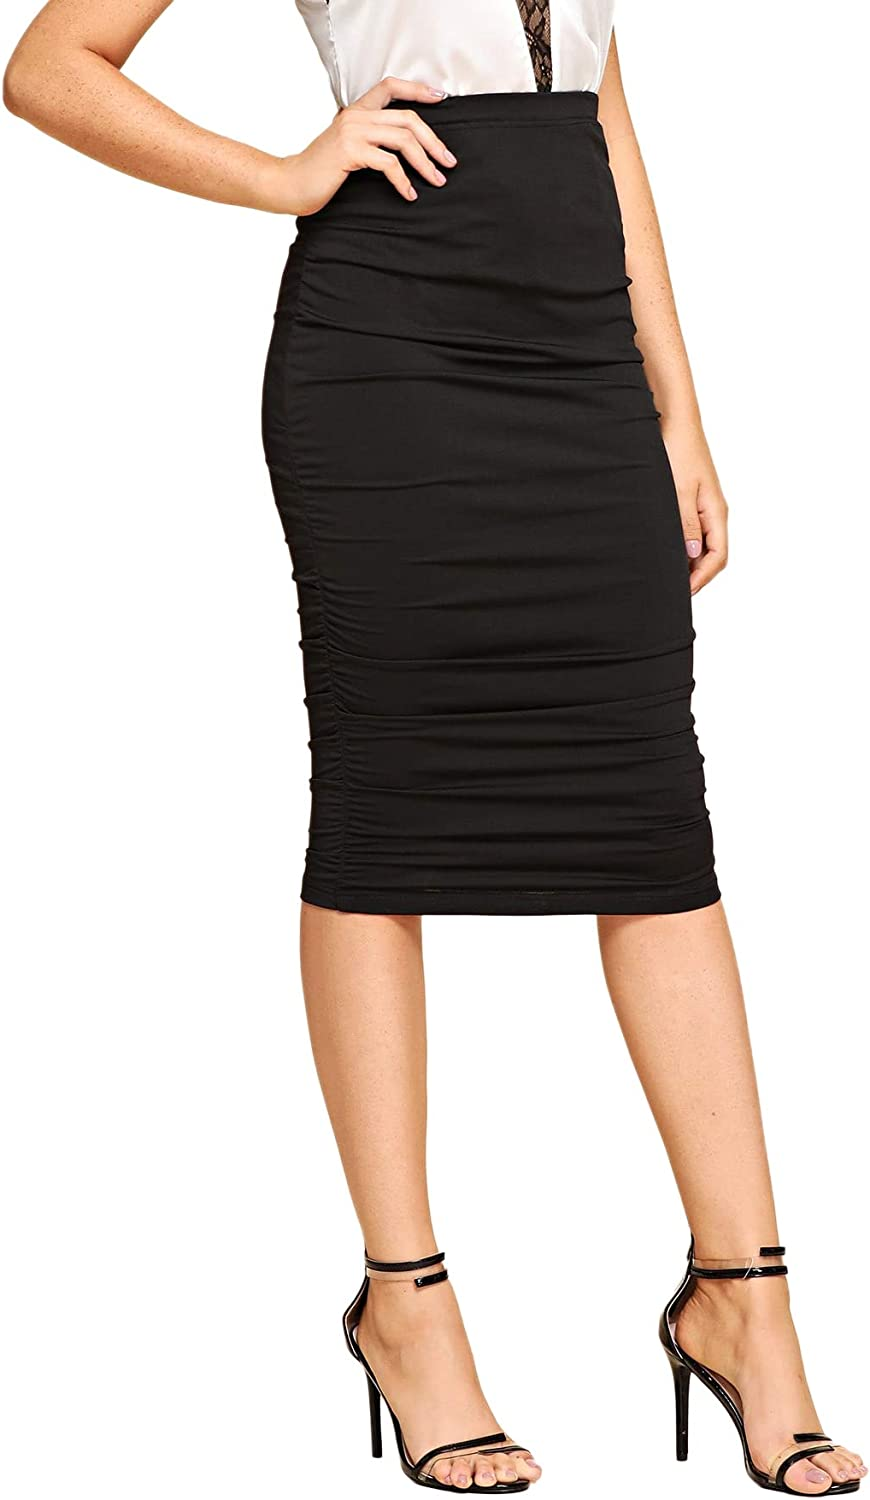 SheIn Women's Solid High Waist Ruched Frill Bodycon Stretch Ruffle Midi Pencil Skirt